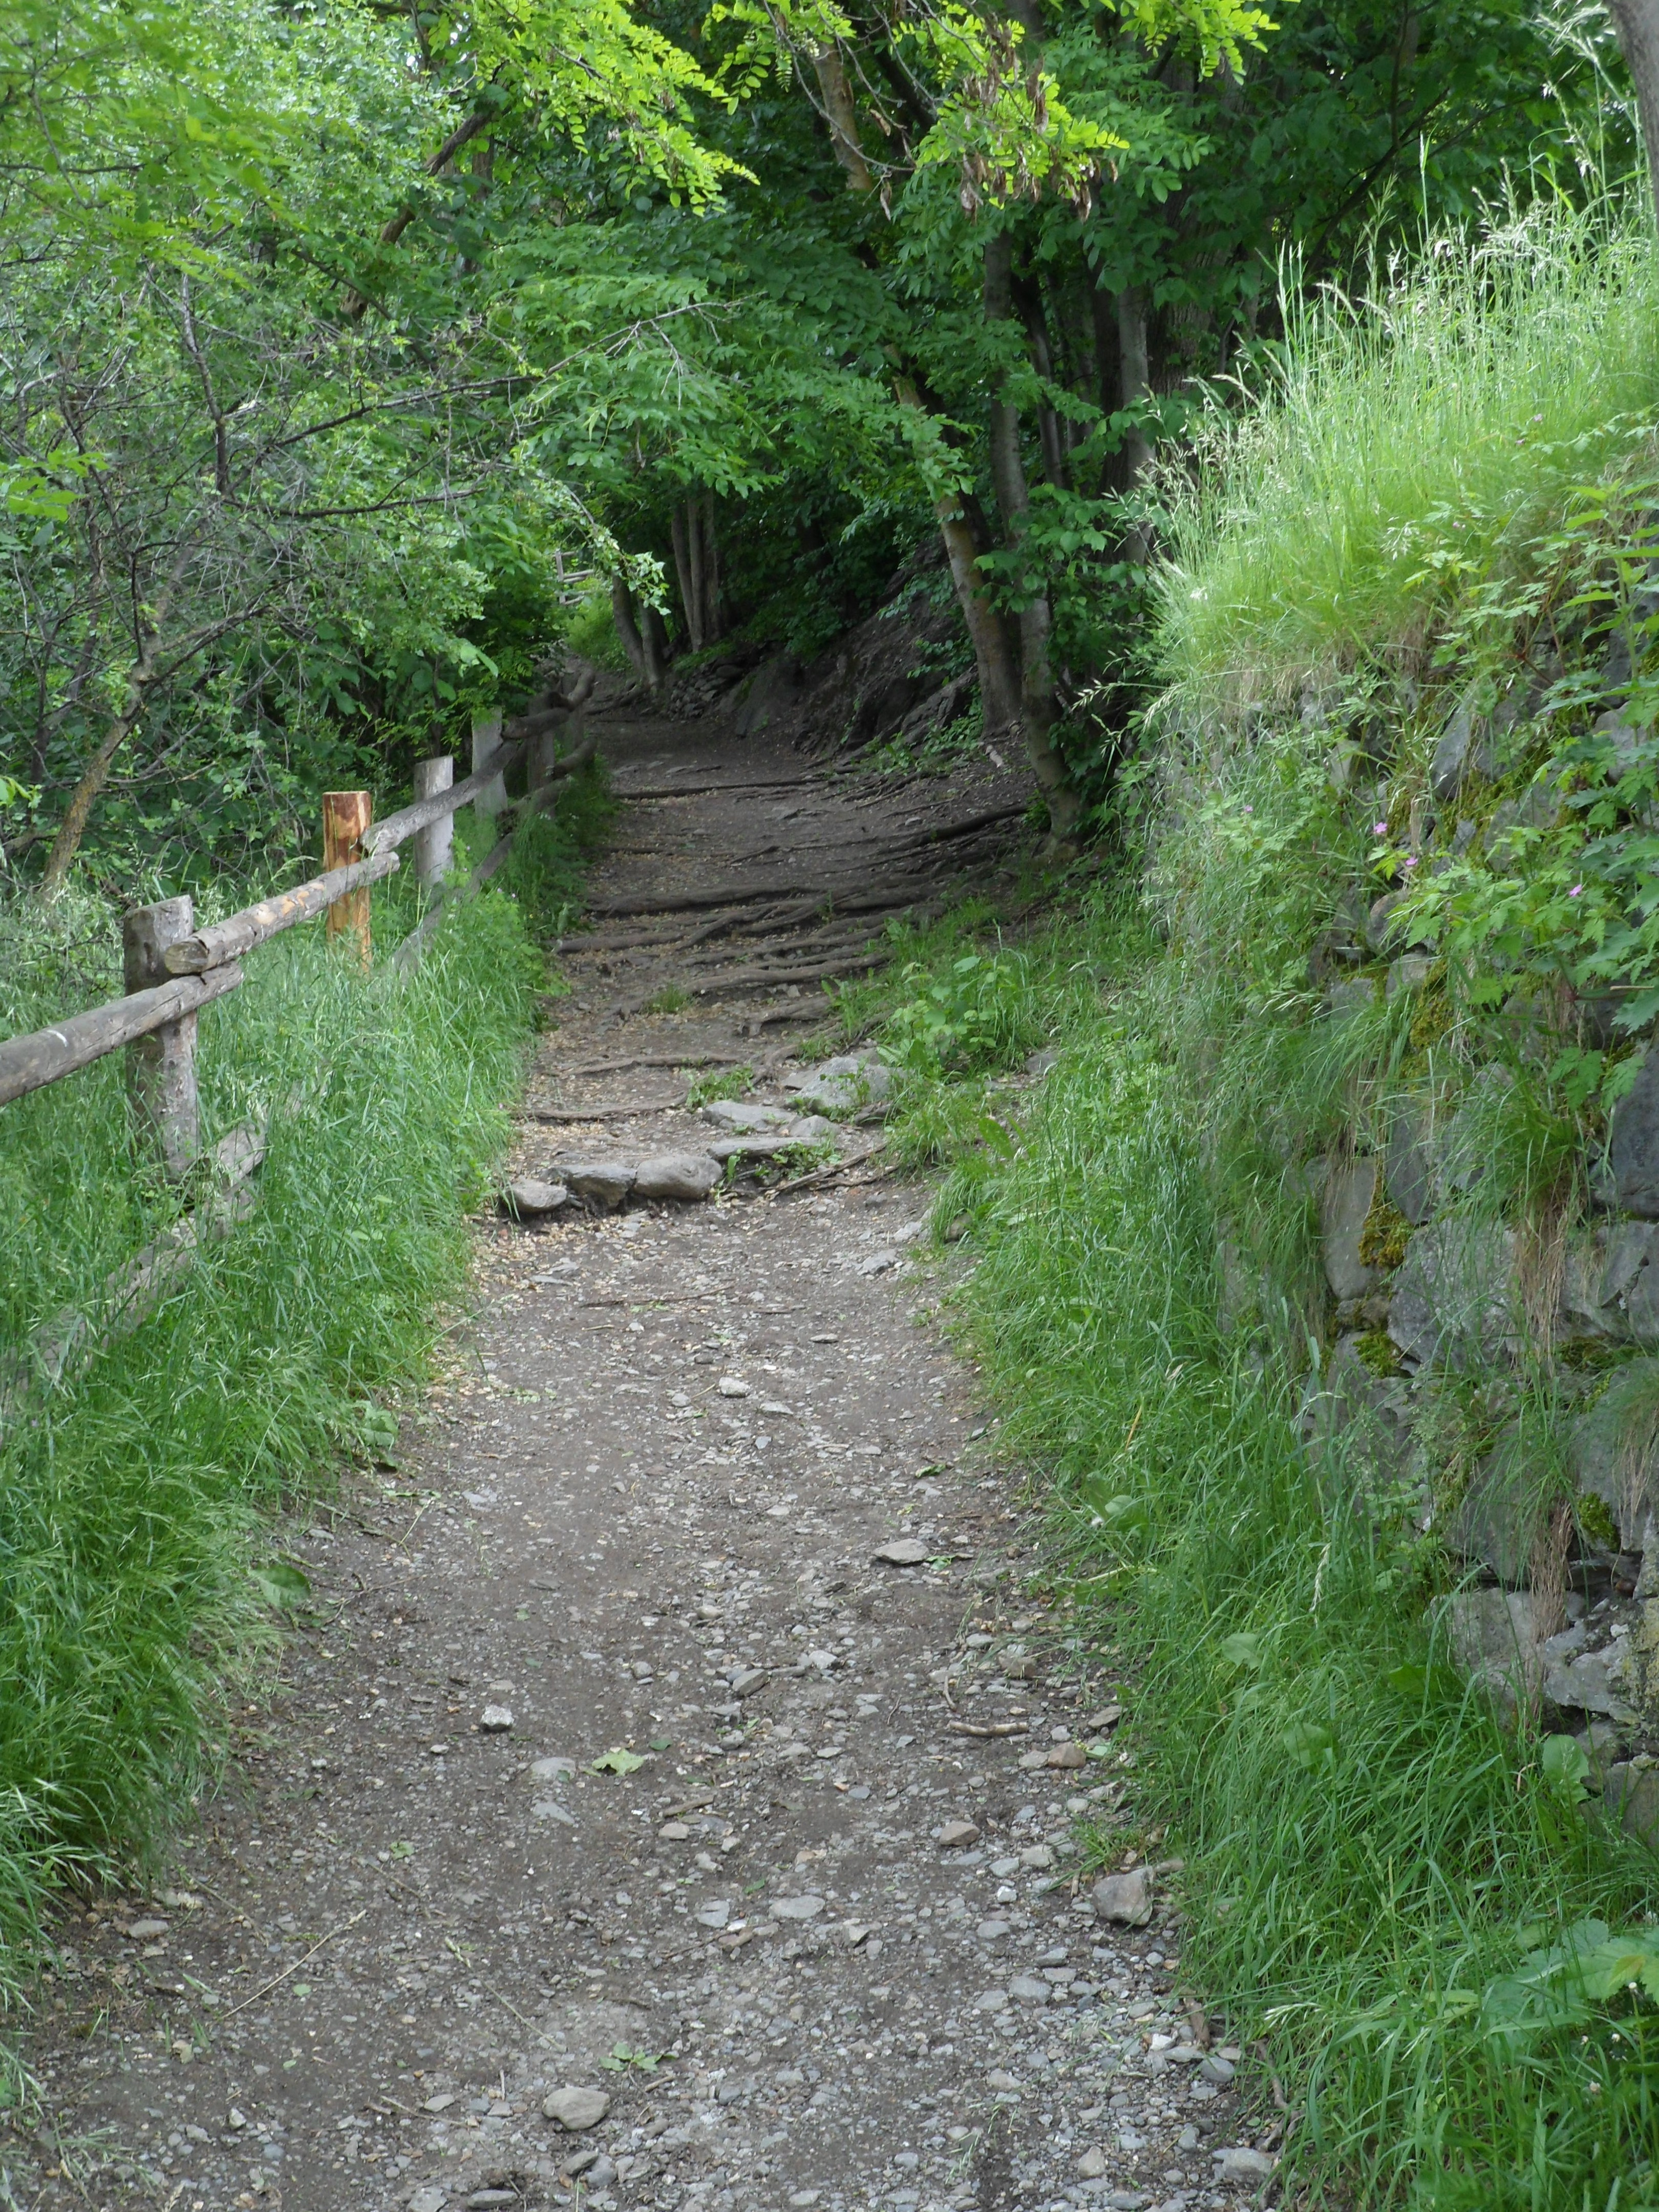 A dirt-and-gravel path with a stone terrace wall on one side and a log-and-post fence on the other